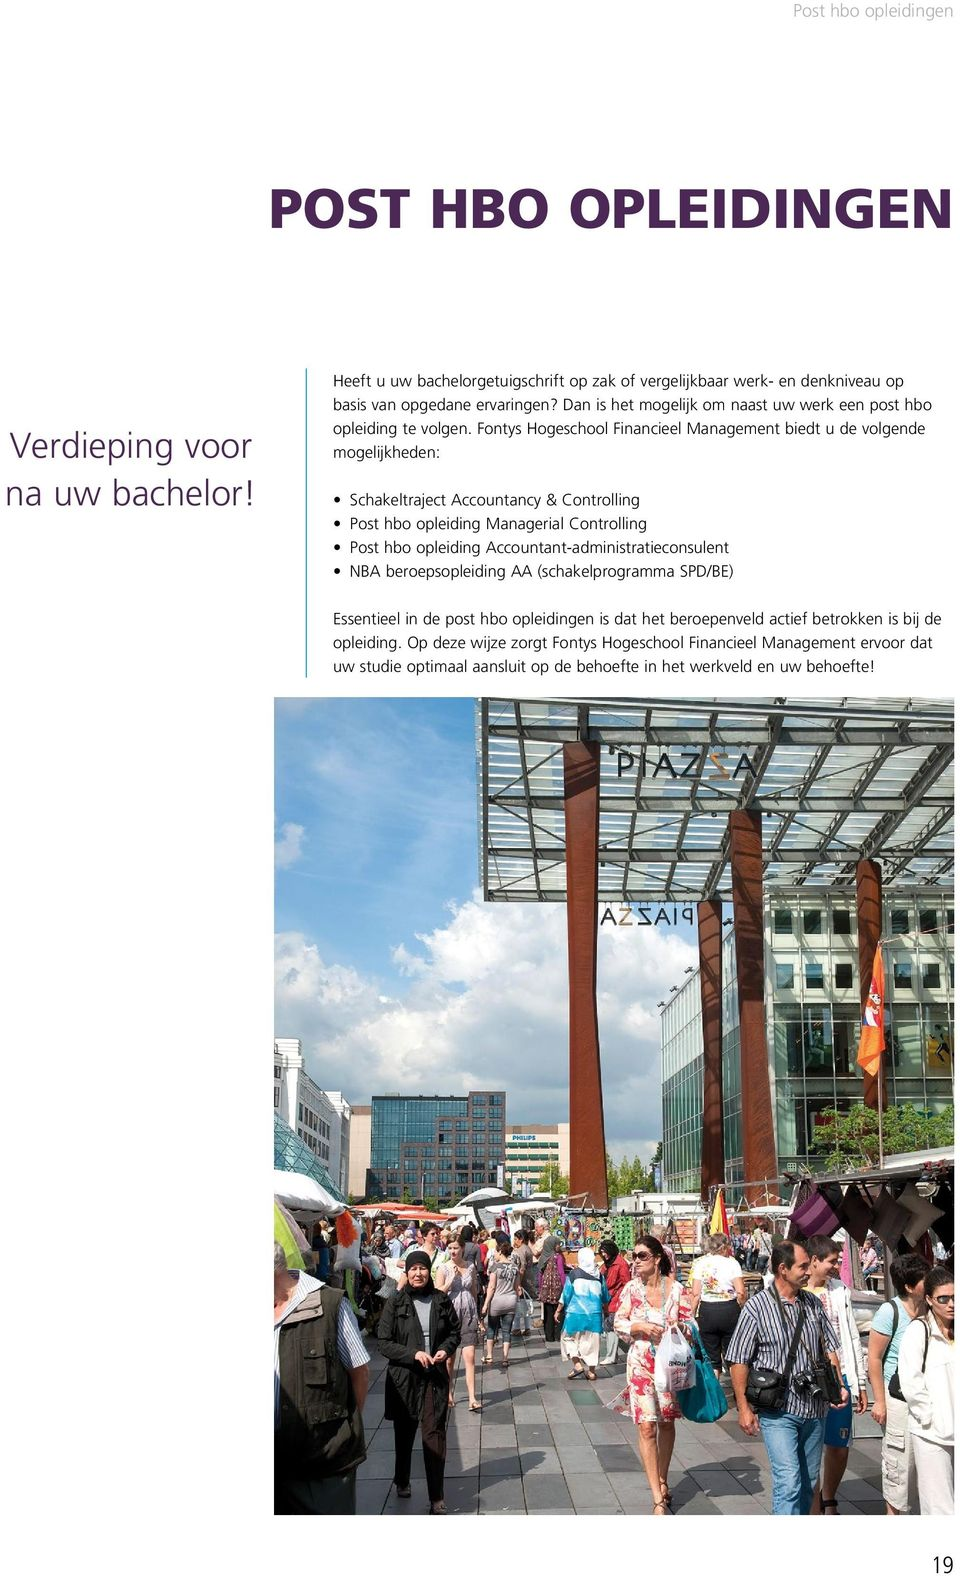 Fontys Hogeschool Financieel Management biedt u de volgende mogelijkheden: Schakeltraject Accountancy & Controlling Post hbo opleiding Managerial Controlling Post hbo opleiding